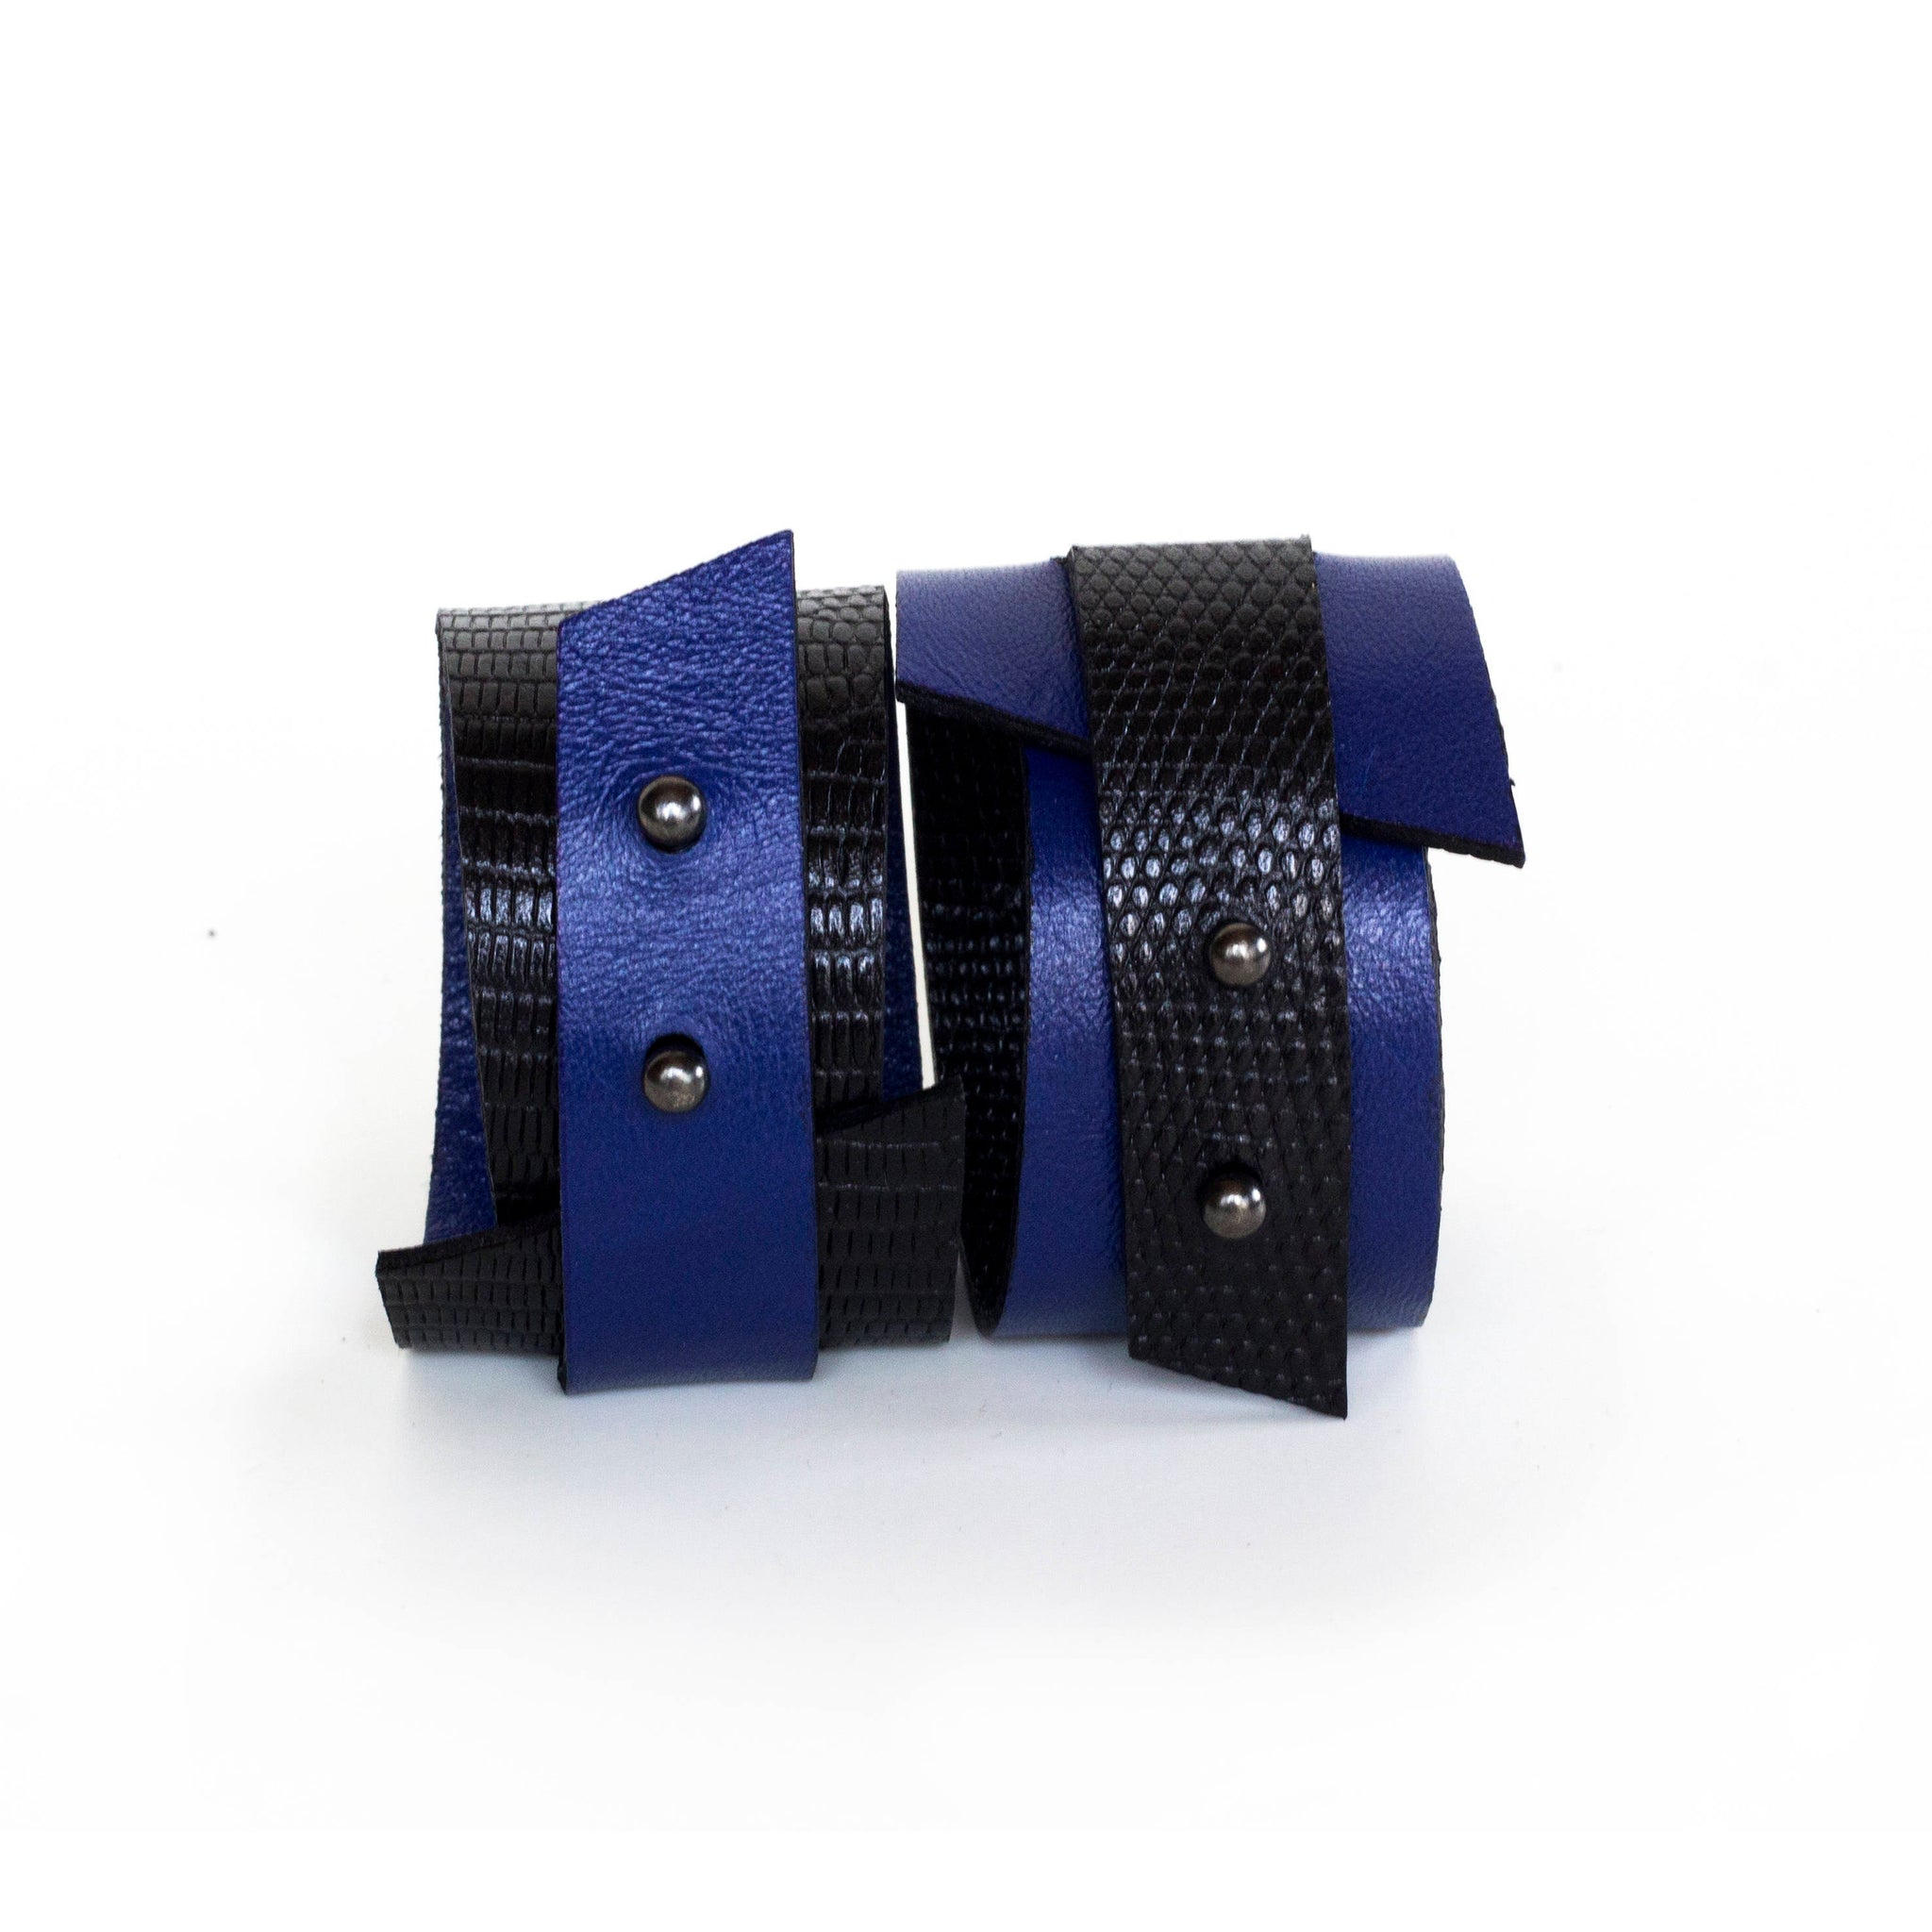 Women's leather bracelet bangles, reversible black and blue